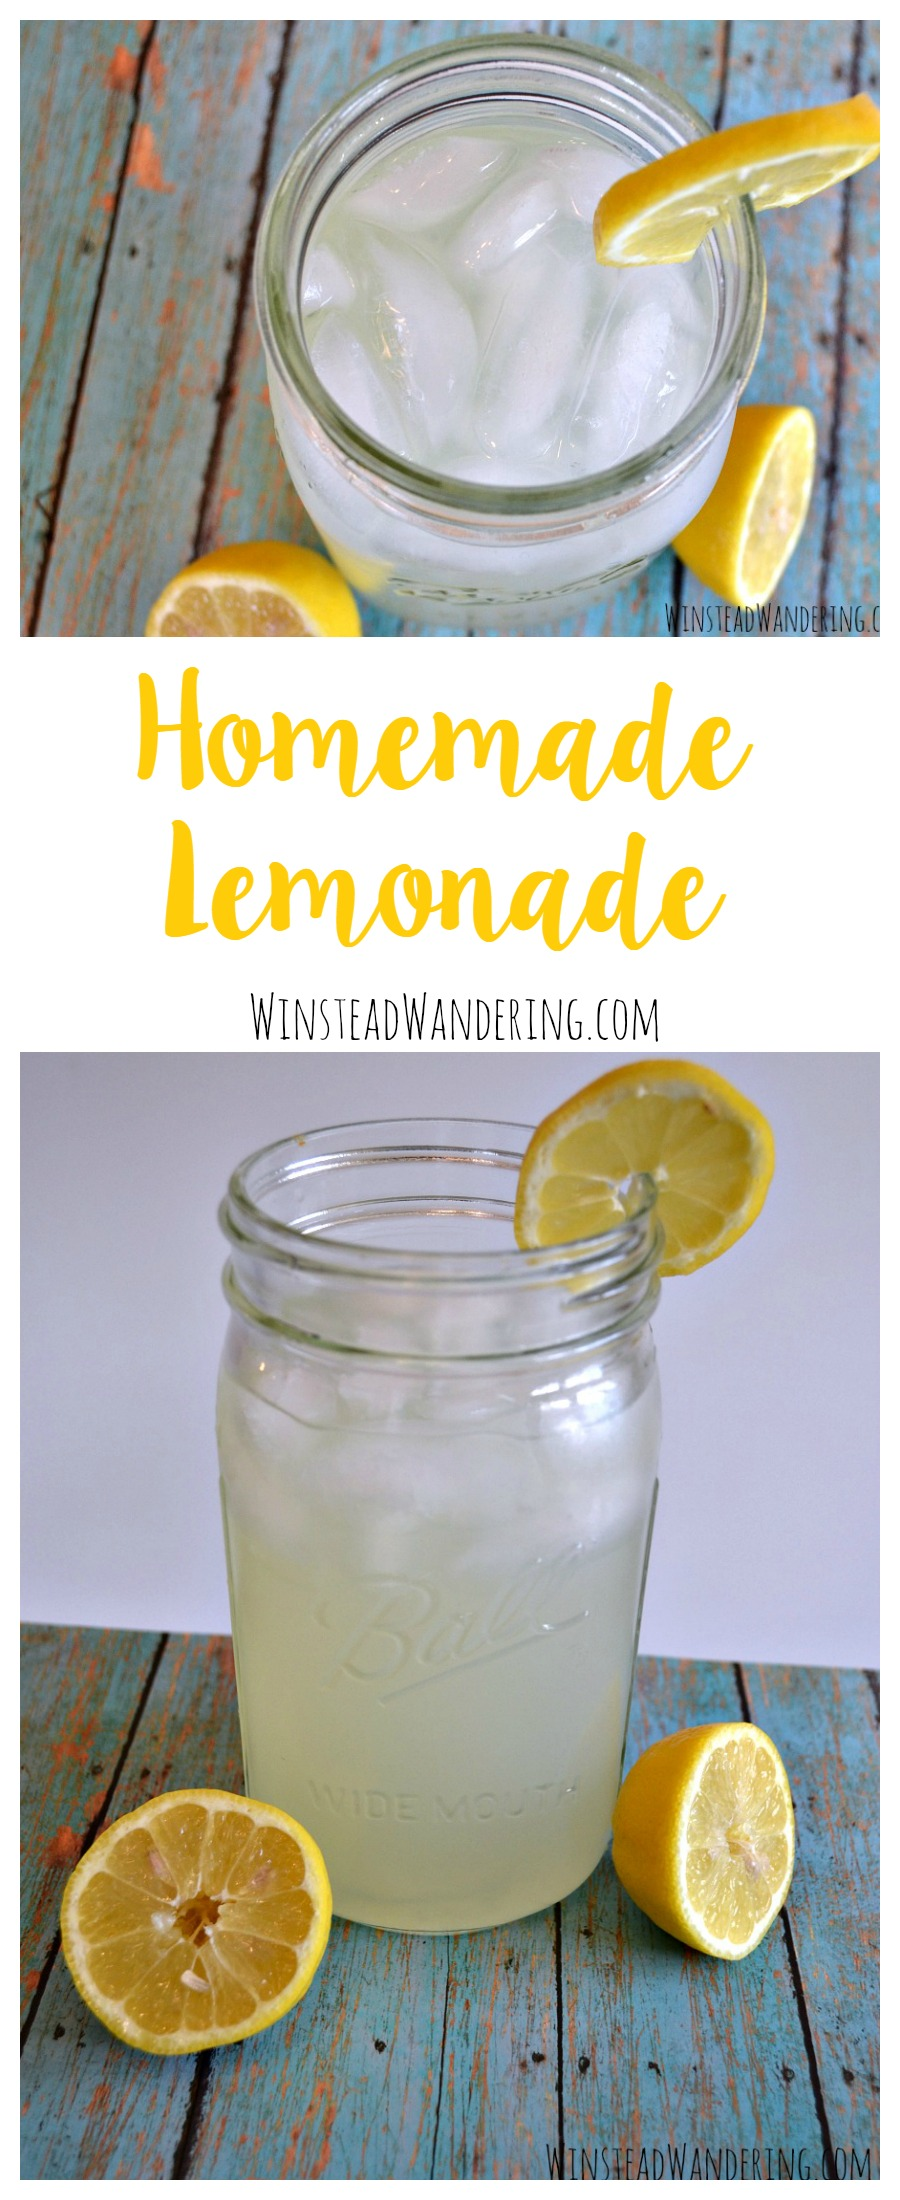 This summer, ditch the canned powder and make your own homemade lemonade. With just three simple ingredients, you can enjoy a refreshing glass any time.